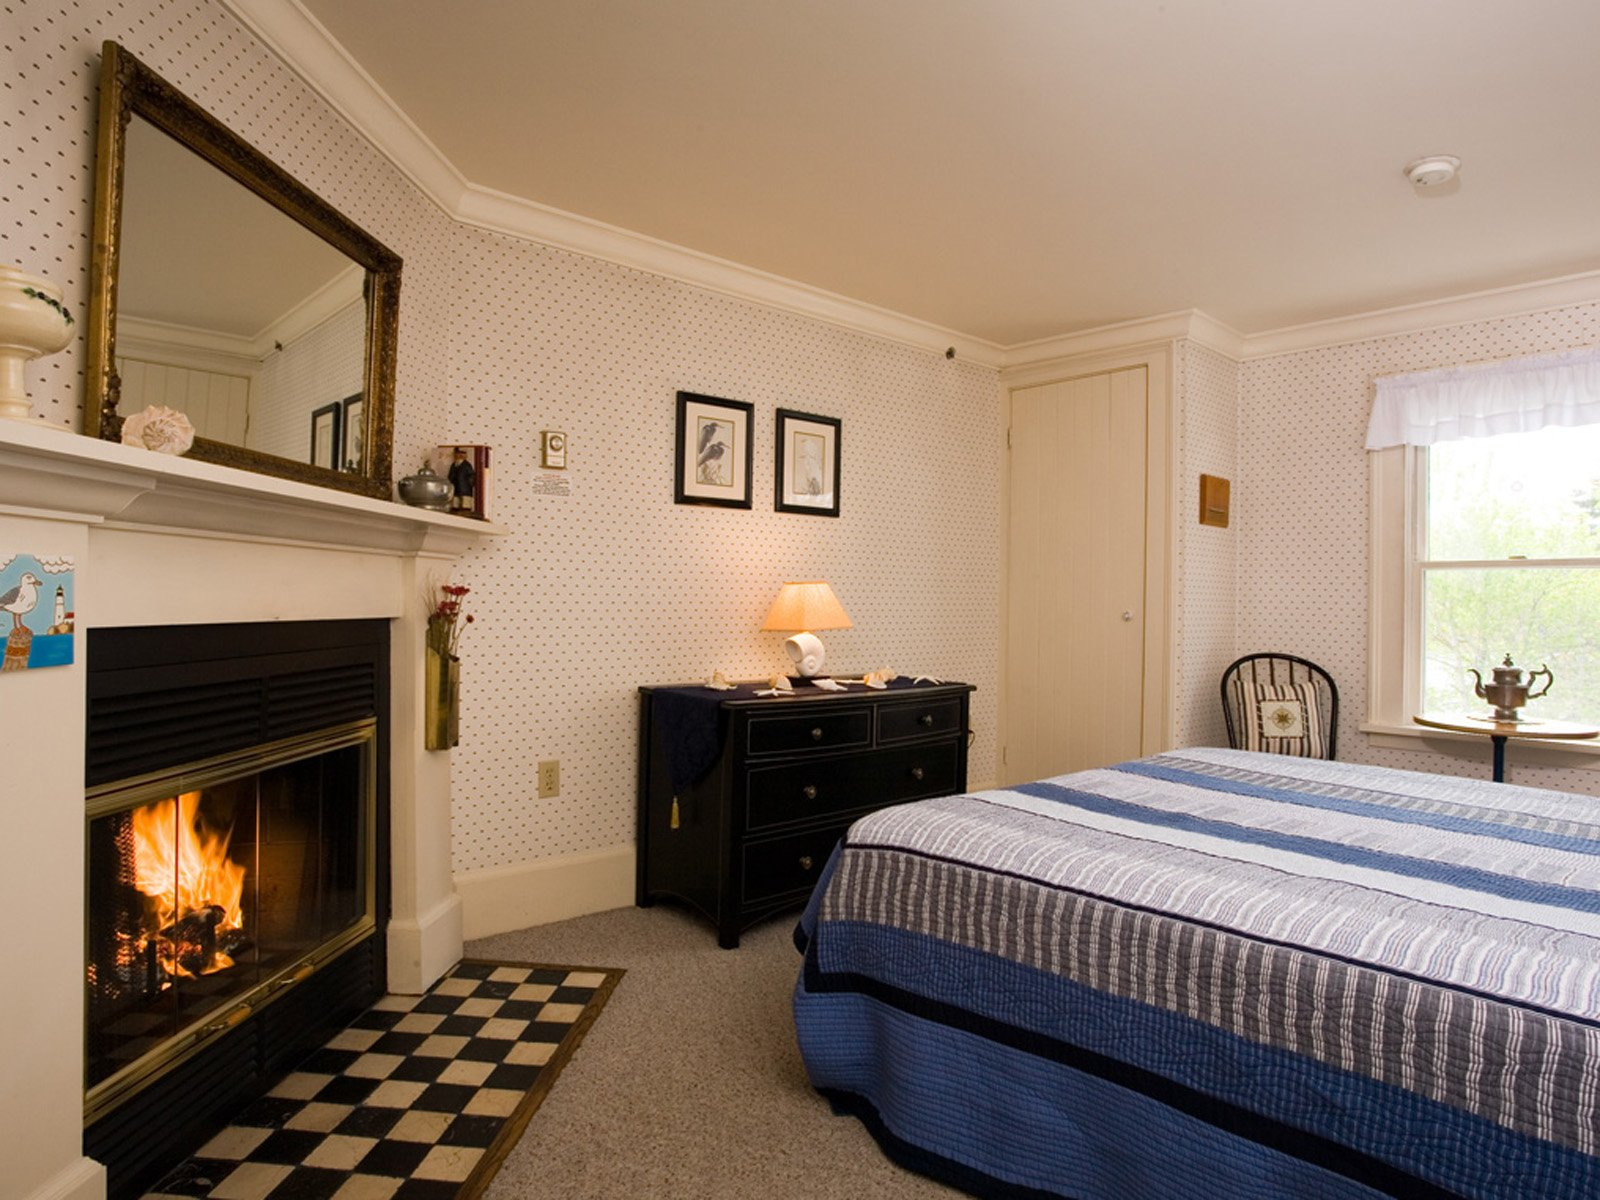 A room with a view (and fireplace!)